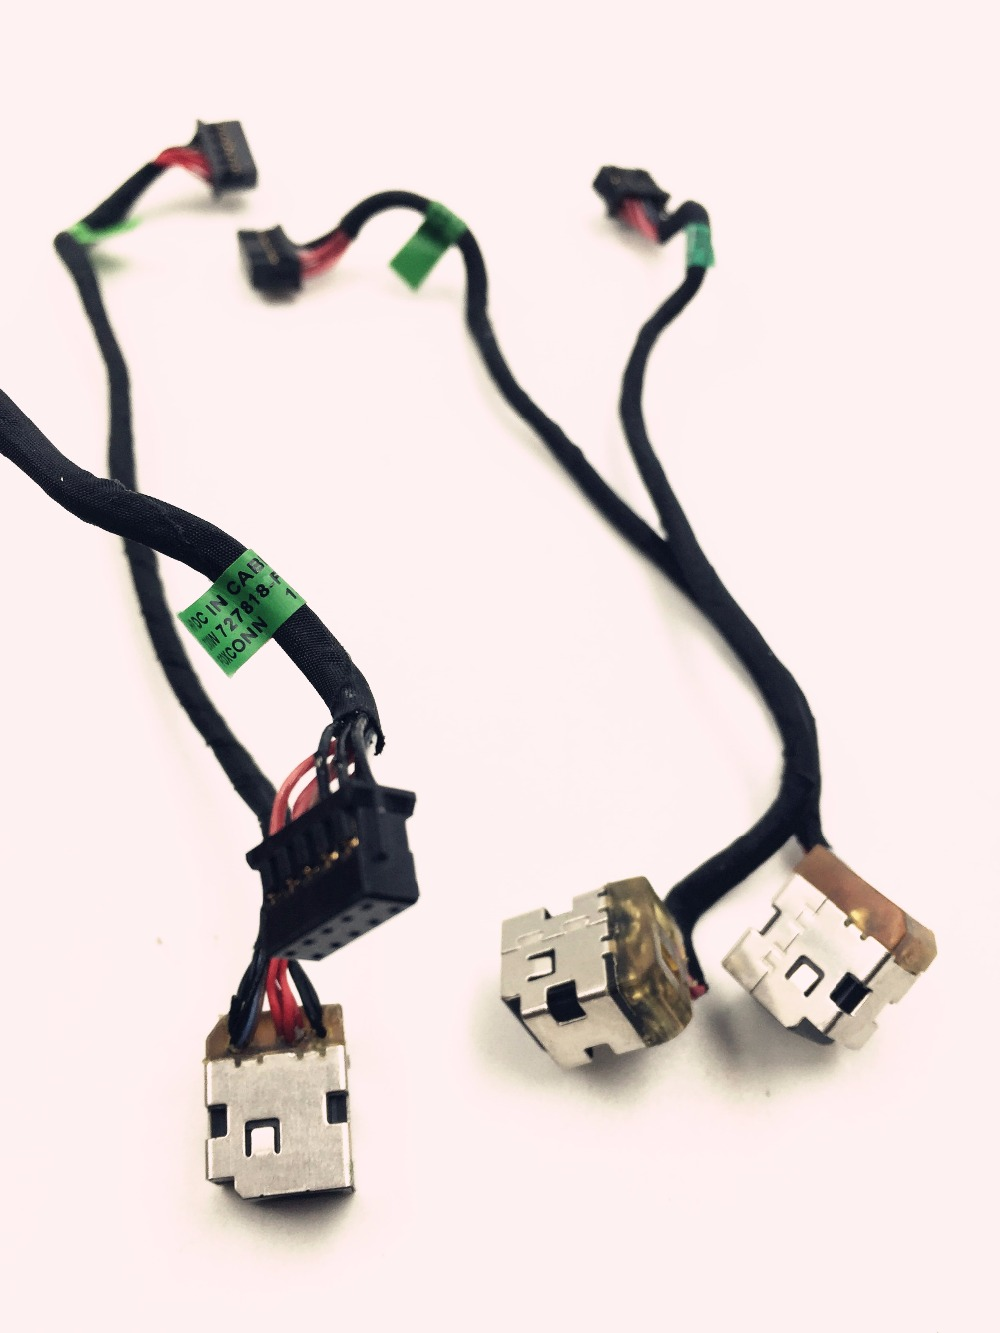 NEW LAPTOP DC POWER JACK CABLE FOR HP ZBOOK 17 ZBOOK 15 SERIES 727818-001 727819-SD9 new lp2k series contactor lp2k06015 lp2k06015md lp2 k06015md 220v dc